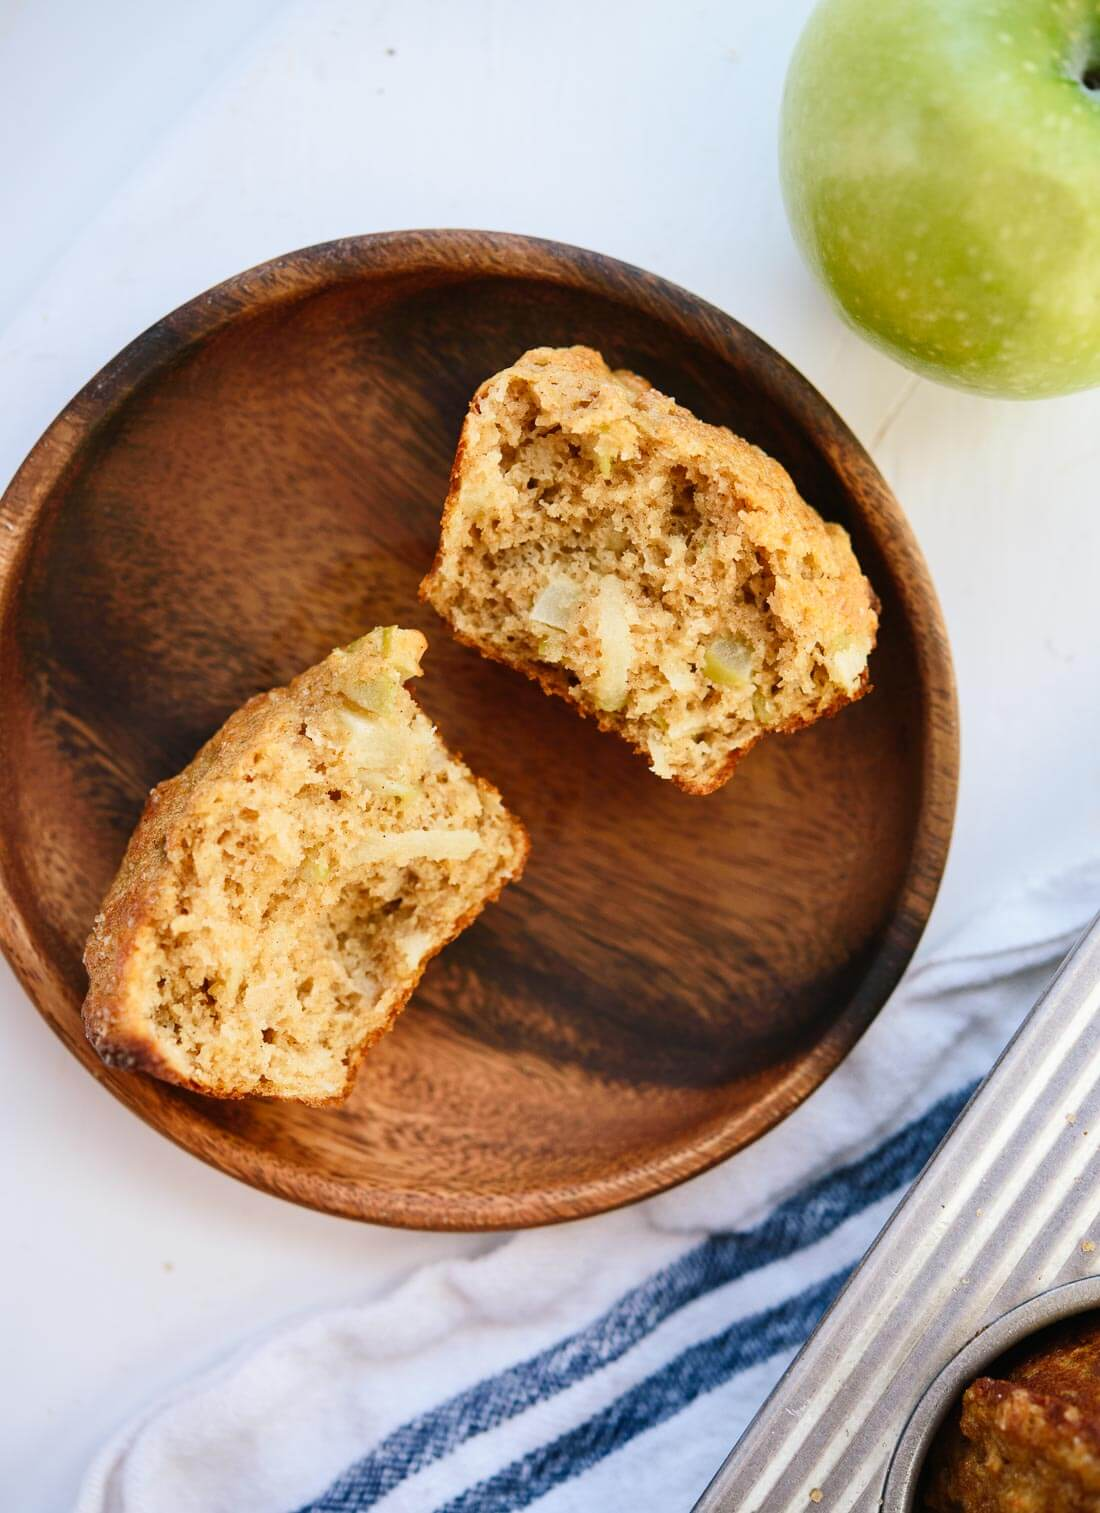 Simple, healthy apple muffins recipe (no crazy ingredients!) - cookieandkate.com